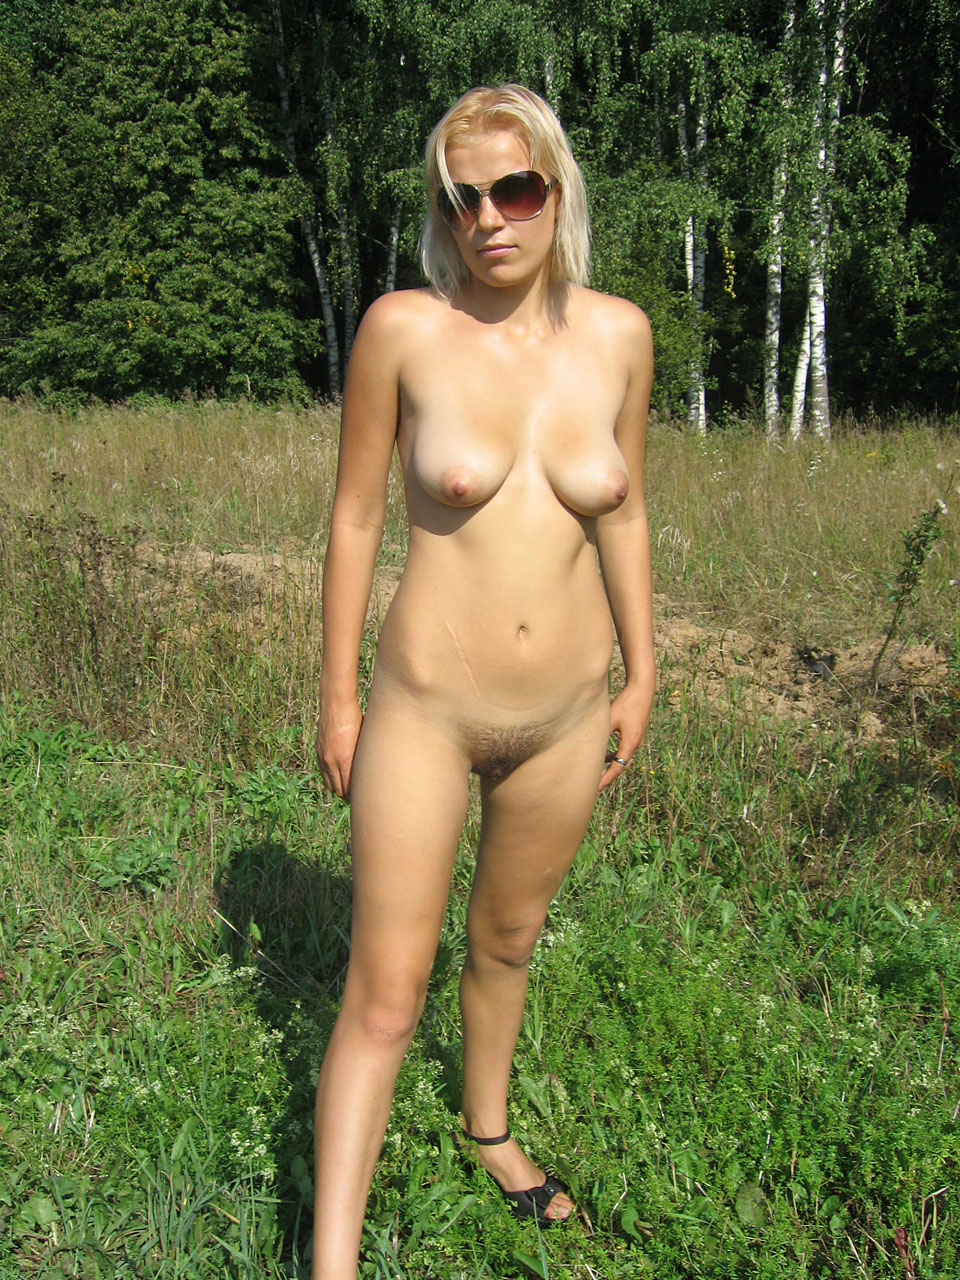 Nudism photo collection another pretty